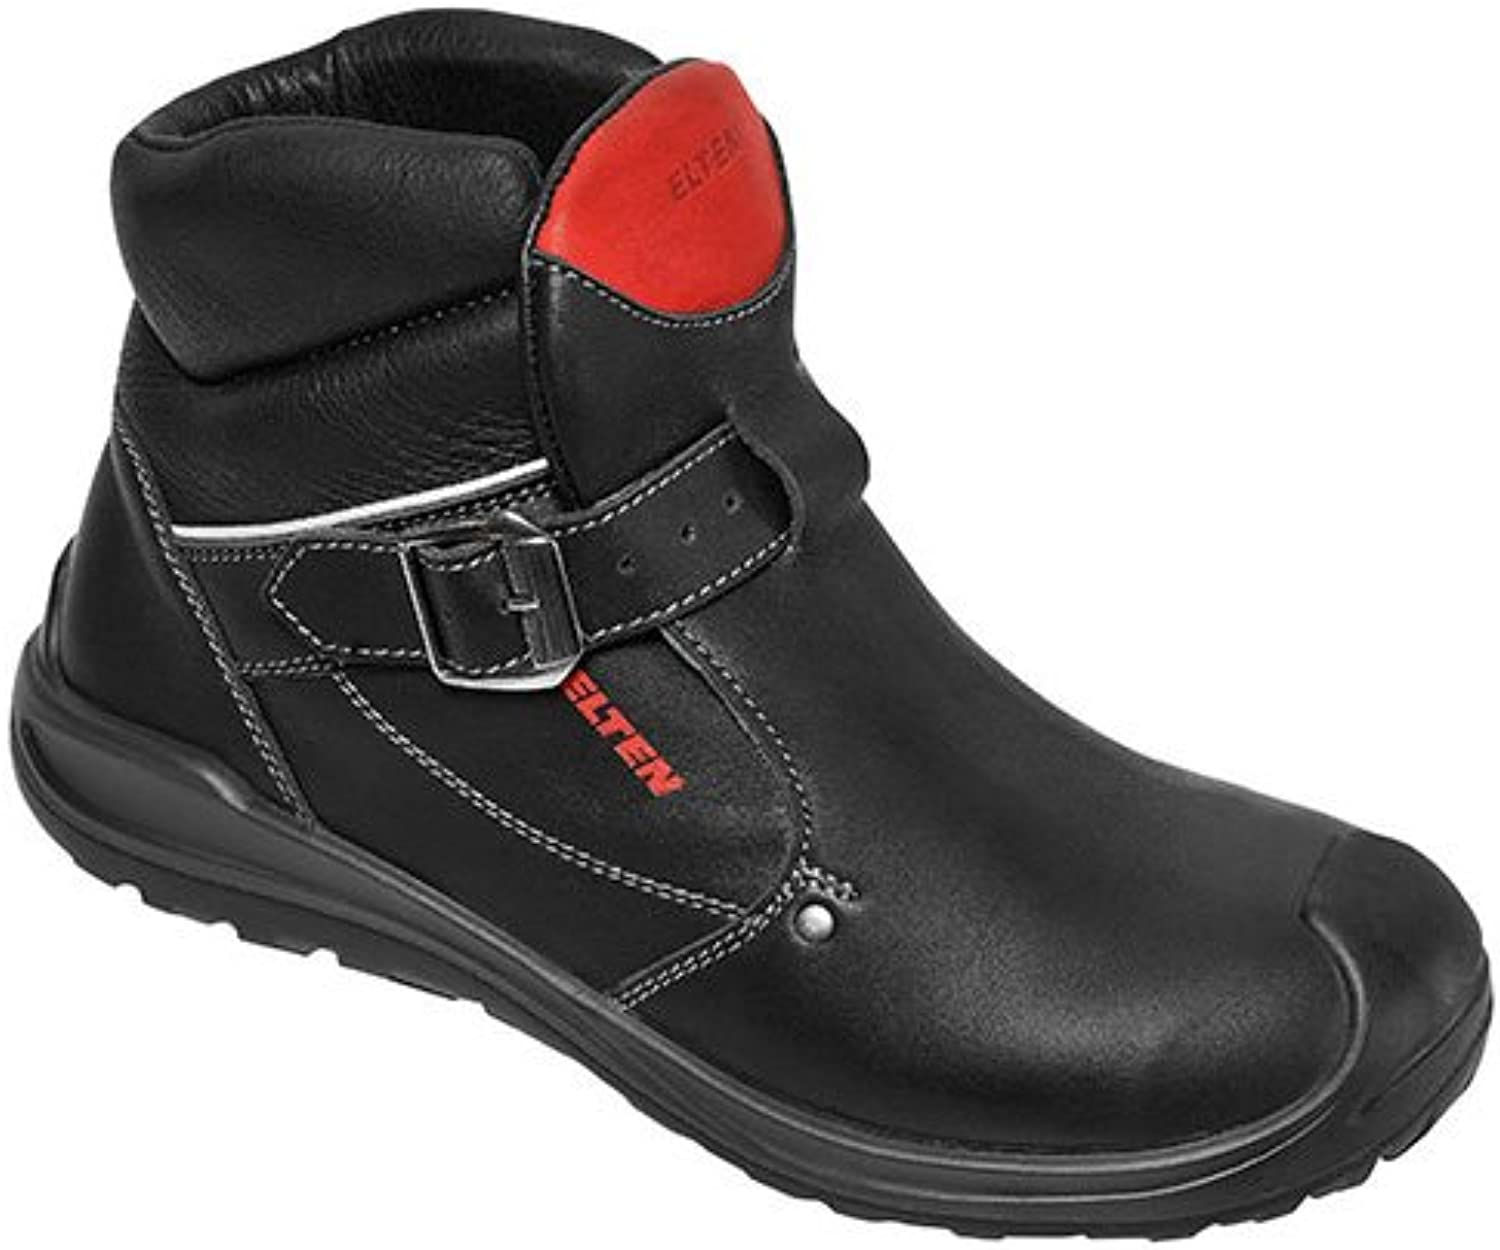 Elten 66071-48 Size 48 S3 HI Anderson Roof  Safety Boot - Multi-Colour